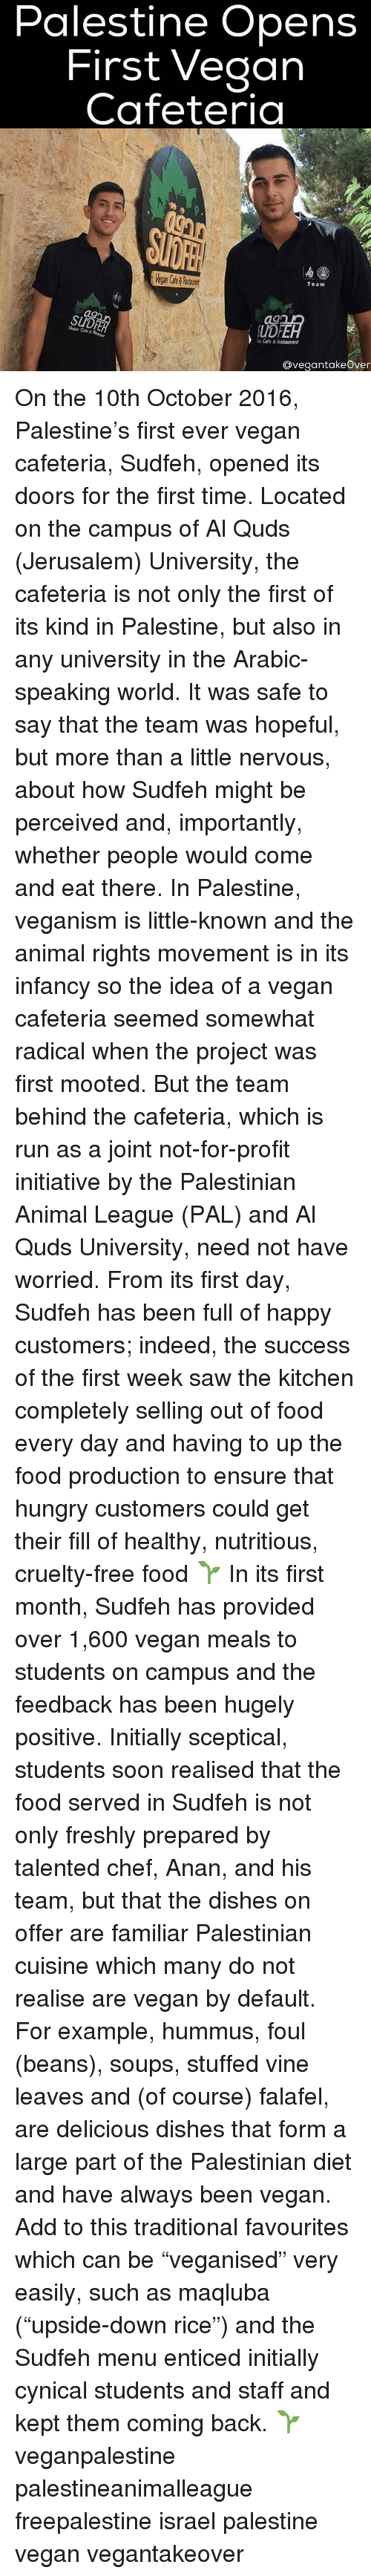 "Initialisms: Palestine Opens  First Vegan  Cafeteria  Team  Vegan Cafe 6  Cafe &lestaurant  Ovegantakeover On the 10th October 2016, Palestine's first ever vegan cafeteria, Sudfeh, opened its doors for the first time. Located on the campus of Al Quds (Jerusalem) University, the cafeteria is not only the first of its kind in Palestine, but also in any university in the Arabic-speaking world. It was safe to say that the team was hopeful, but more than a little nervous, about how Sudfeh might be perceived and, importantly, whether people would come and eat there. In Palestine, veganism is little-known and the animal rights movement is in its infancy so the idea of a vegan cafeteria seemed somewhat radical when the project was first mooted. But the team behind the cafeteria, which is run as a joint not-for-profit initiative by the Palestinian Animal League (PAL) and Al Quds University, need not have worried. From its first day, Sudfeh has been full of happy customers; indeed, the success of the first week saw the kitchen completely selling out of food every day and having to up the food production to ensure that hungry customers could get their fill of healthy, nutritious, cruelty-free food 🌱 In its first month, Sudfeh has provided over 1,600 vegan meals to students on campus and the feedback has been hugely positive. Initially sceptical, students soon realised that the food served in Sudfeh is not only freshly prepared by talented chef, Anan, and his team, but that the dishes on offer are familiar Palestinian cuisine which many do not realise are vegan by default. For example, hummus, foul (beans), soups, stuffed vine leaves and (of course) falafel, are delicious dishes that form a large part of the Palestinian diet and have always been vegan. Add to this traditional favourites which can be ""veganised"" very easily, such as maqluba (""upside-down rice"") and the Sudfeh menu enticed initially cynical students and staff and kept them coming back. 🌱 veganpalestine palestineanimalleague freepalestine israel palestine vegan vegantakeover"